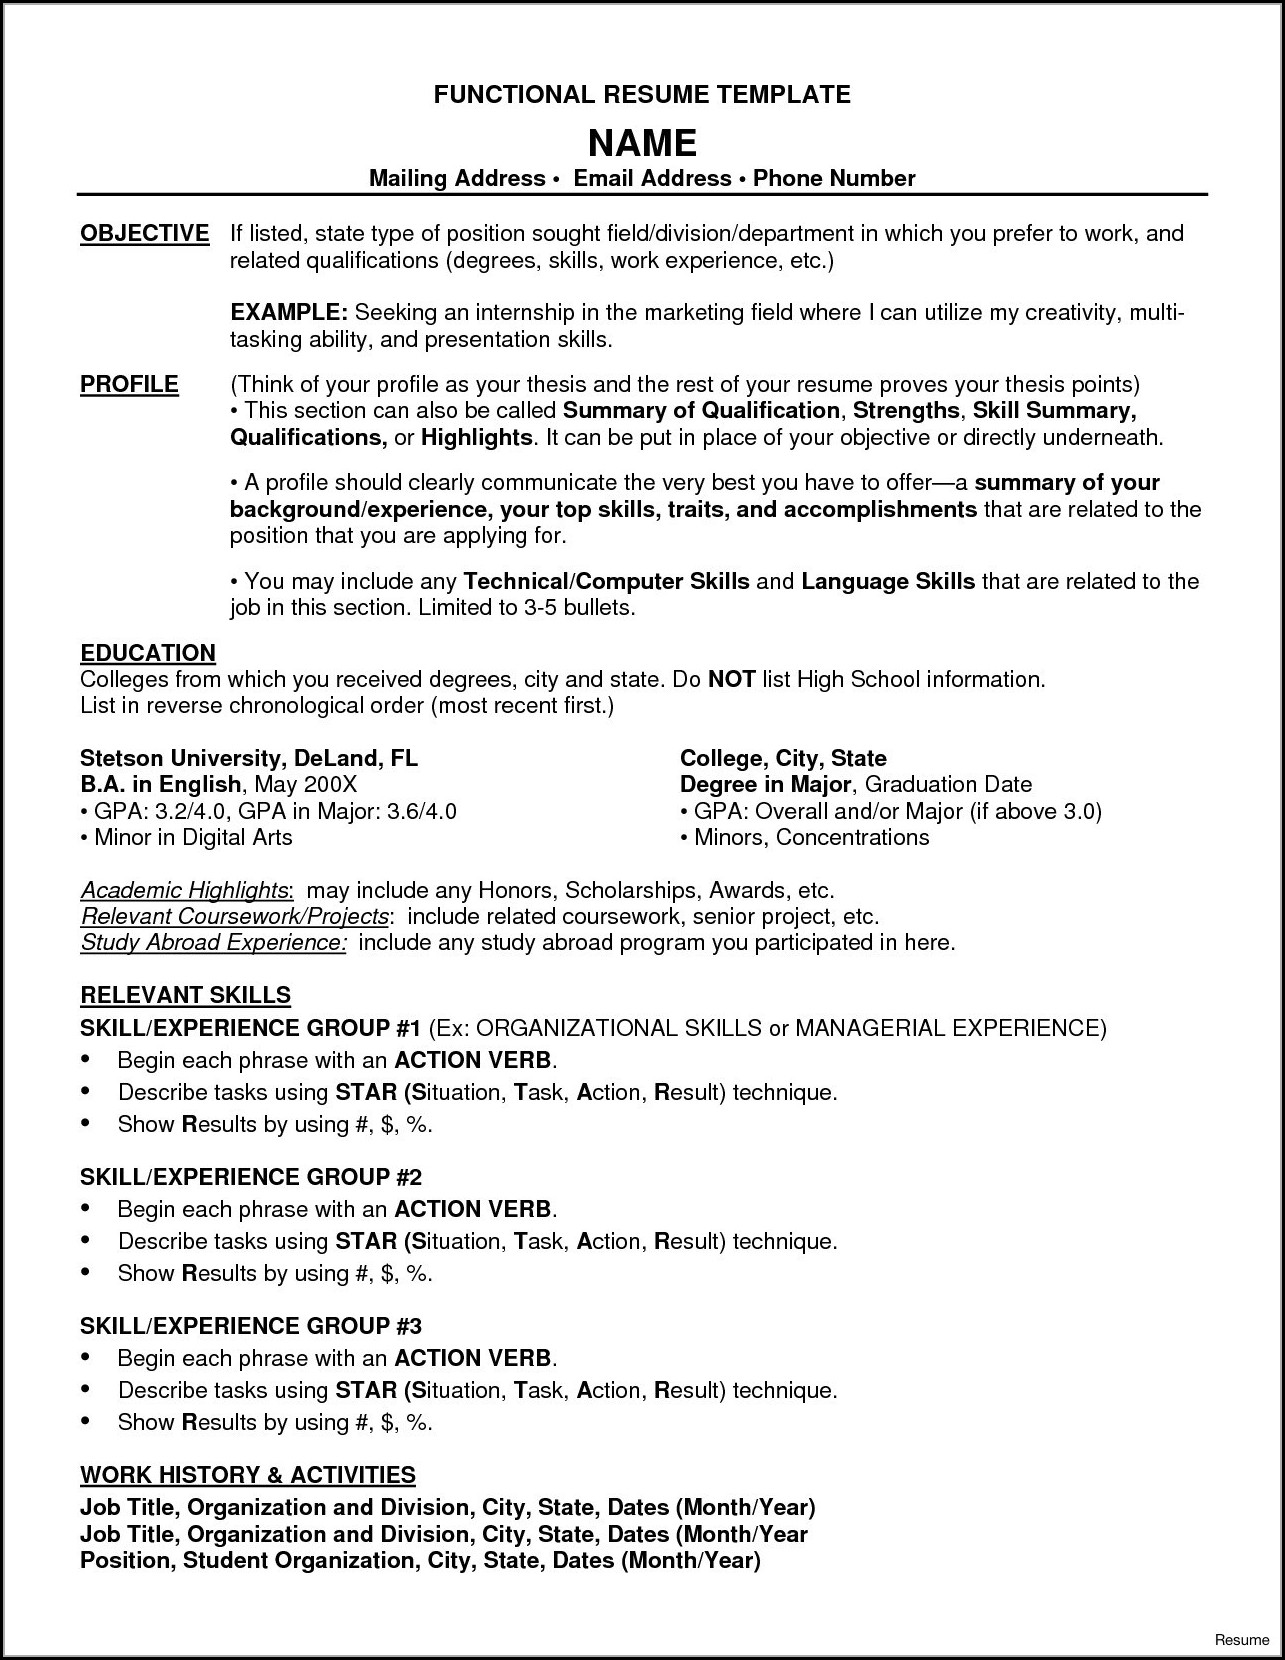 Functional Resume Template Word Free Download